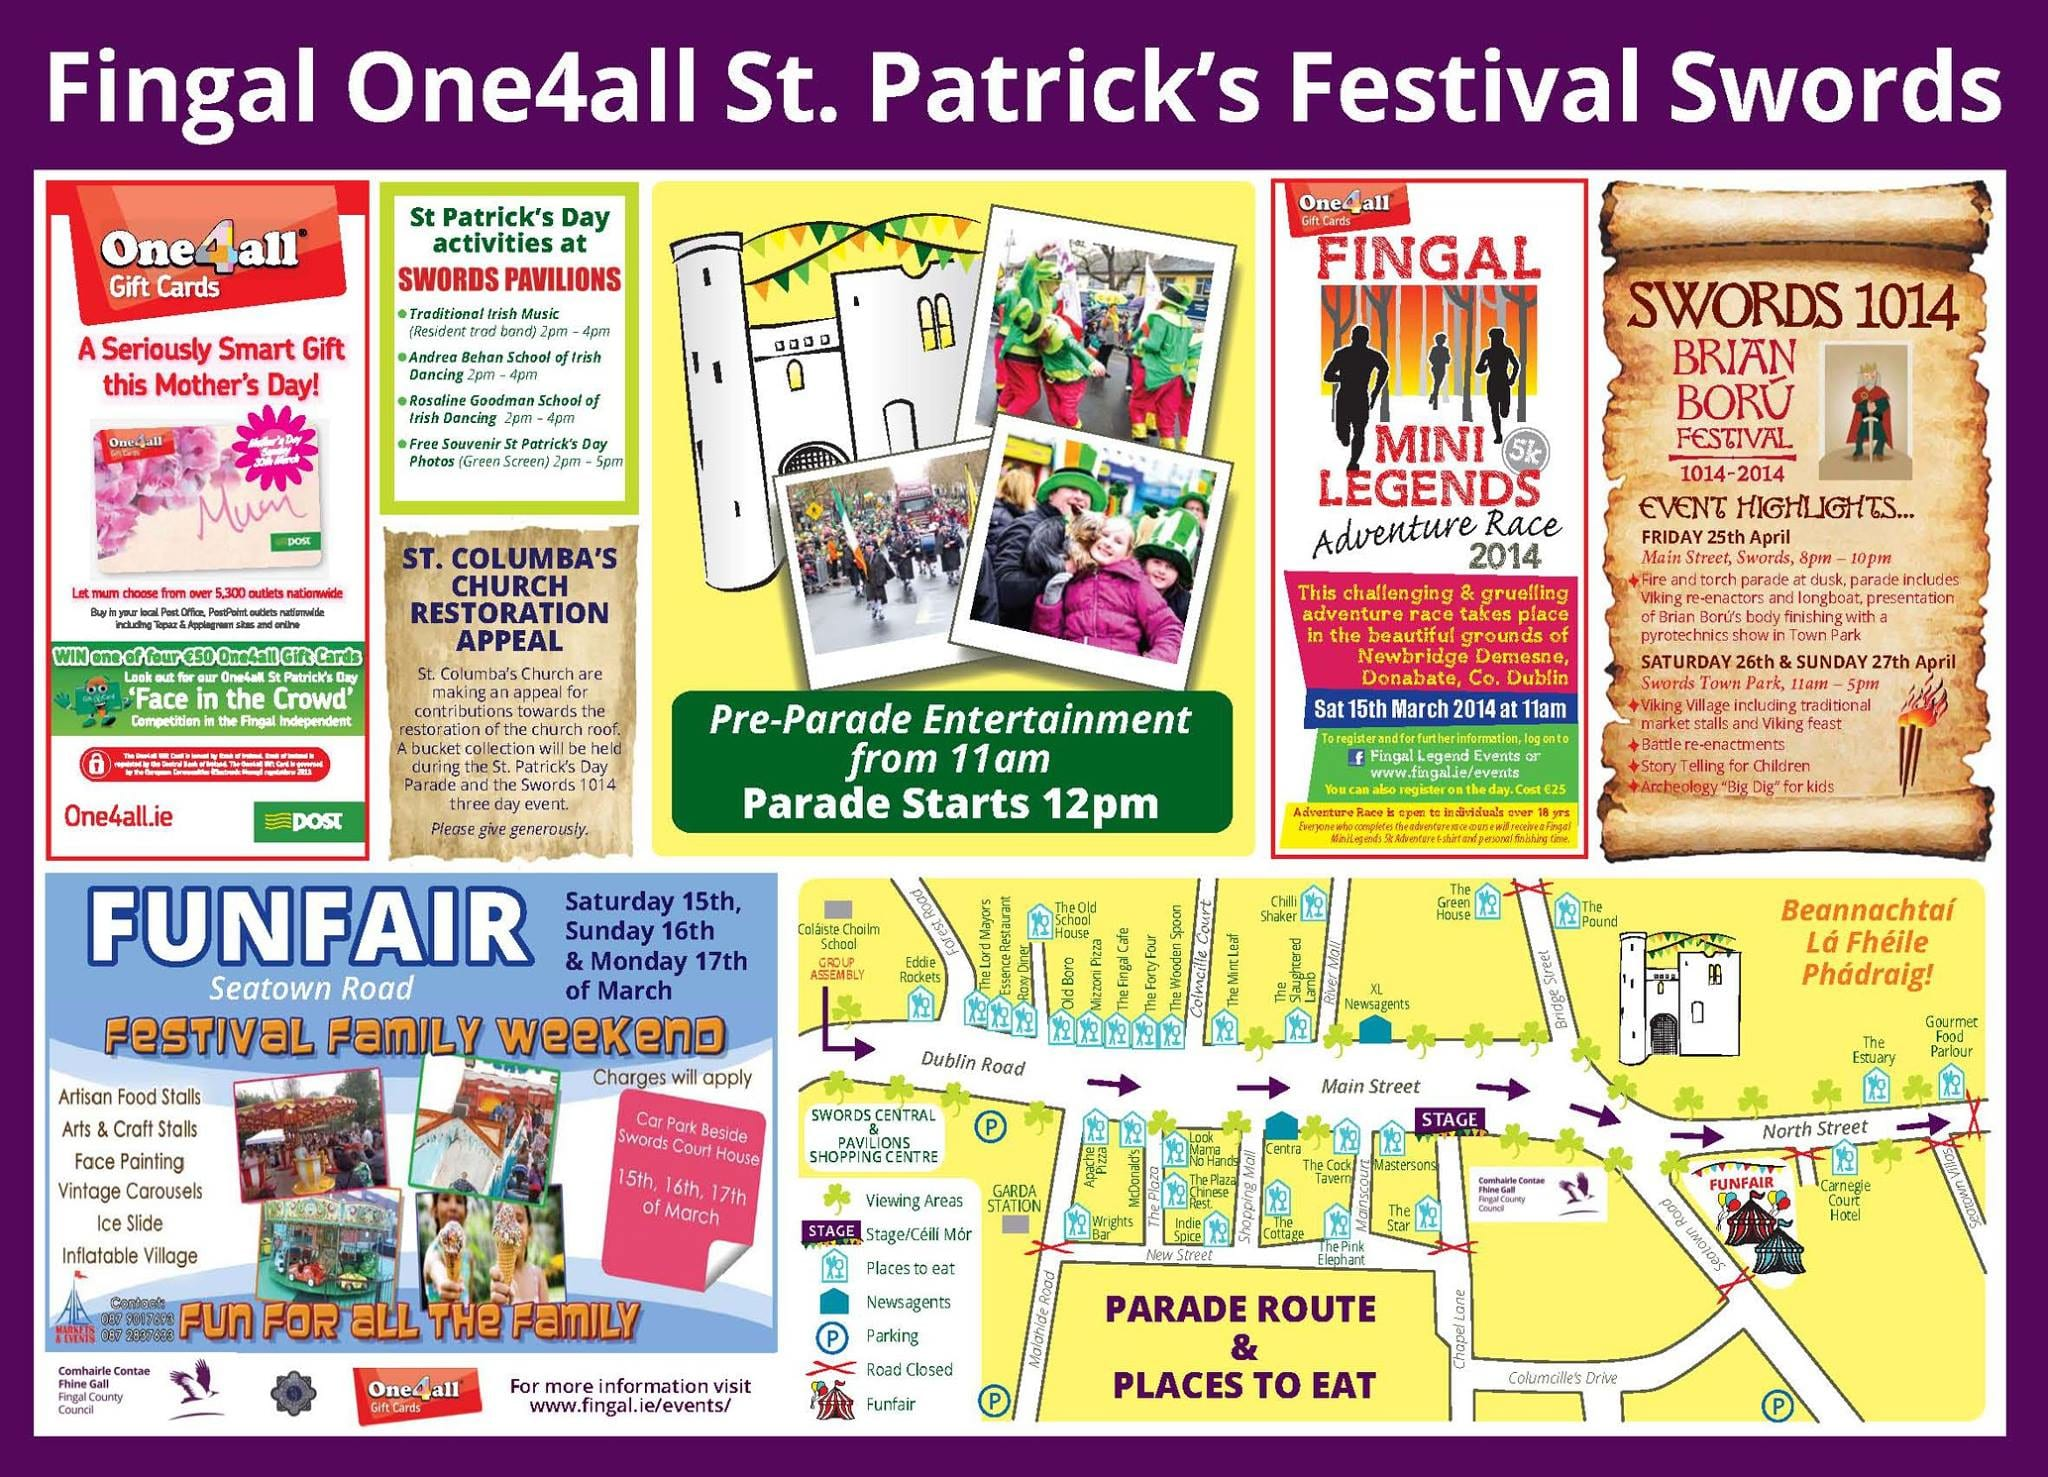 Map for parade route in Swords